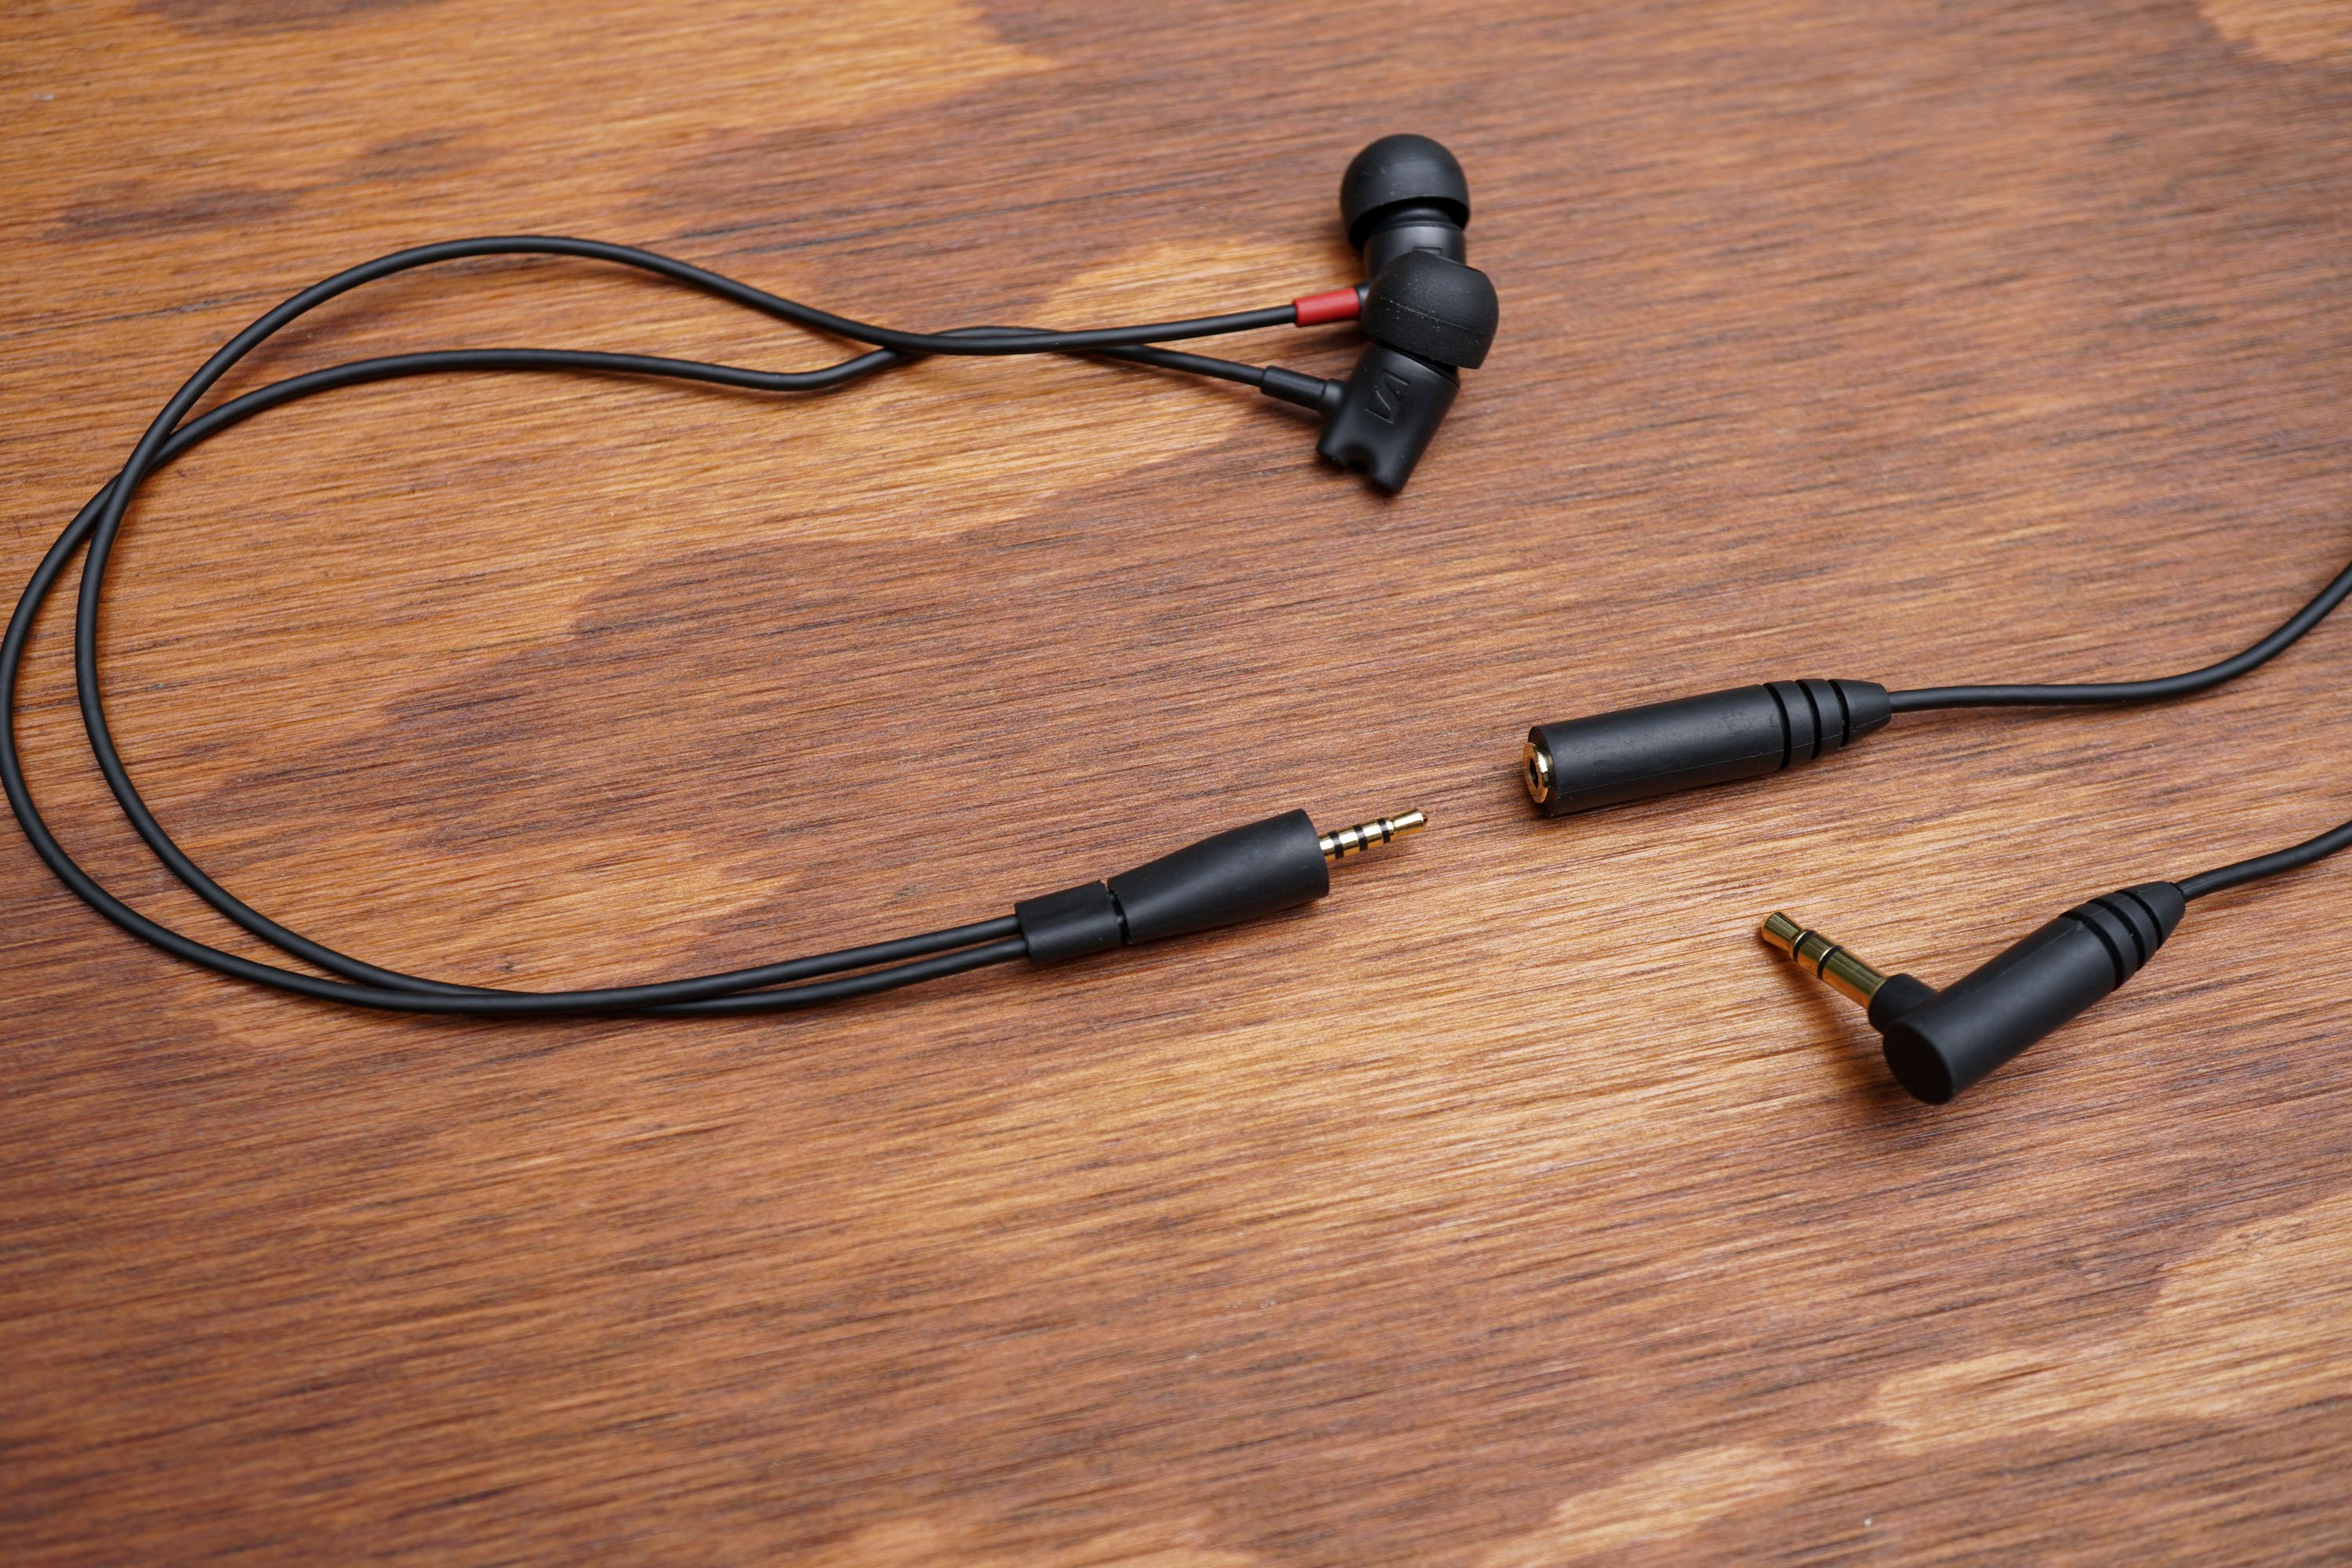 Sennheiser IE 800 S In-Ear Headphones